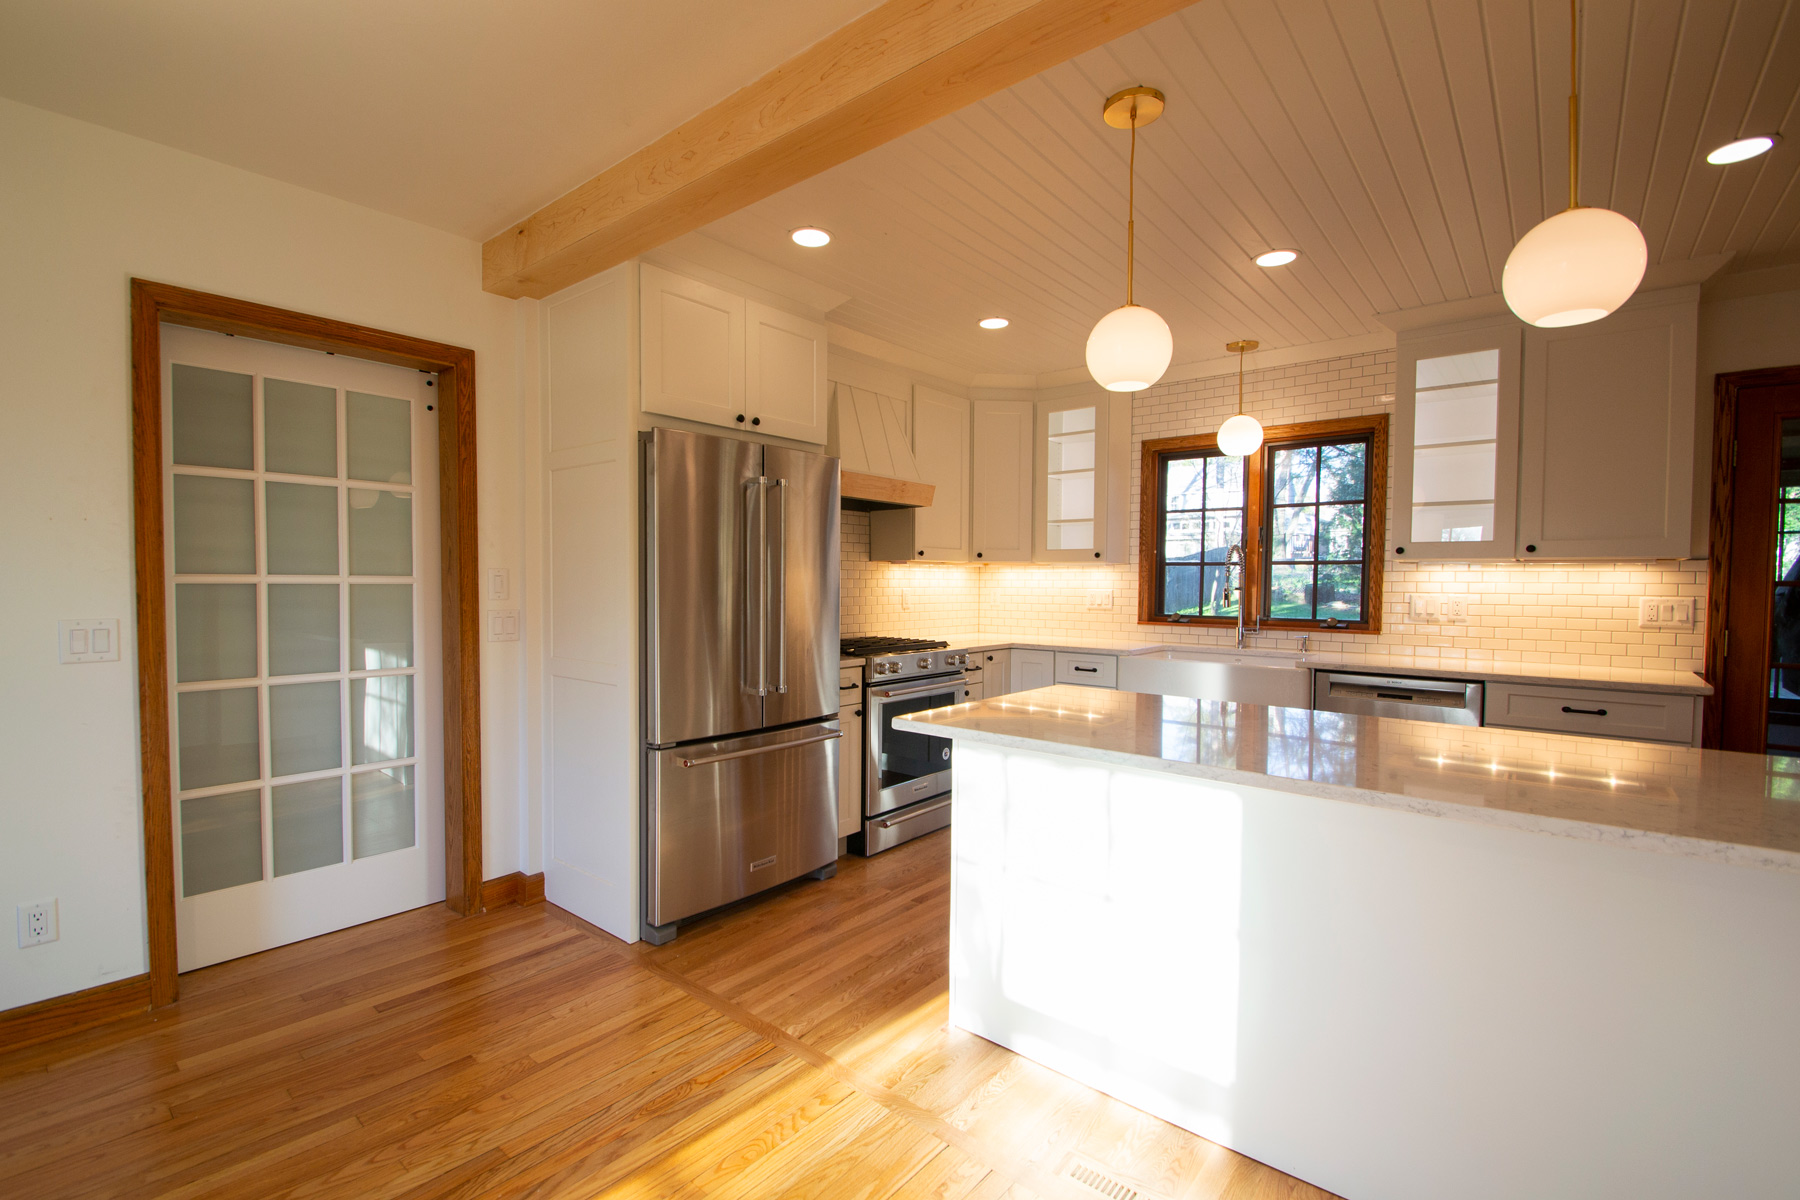 Kitchen and view of sliding barn door in dining room